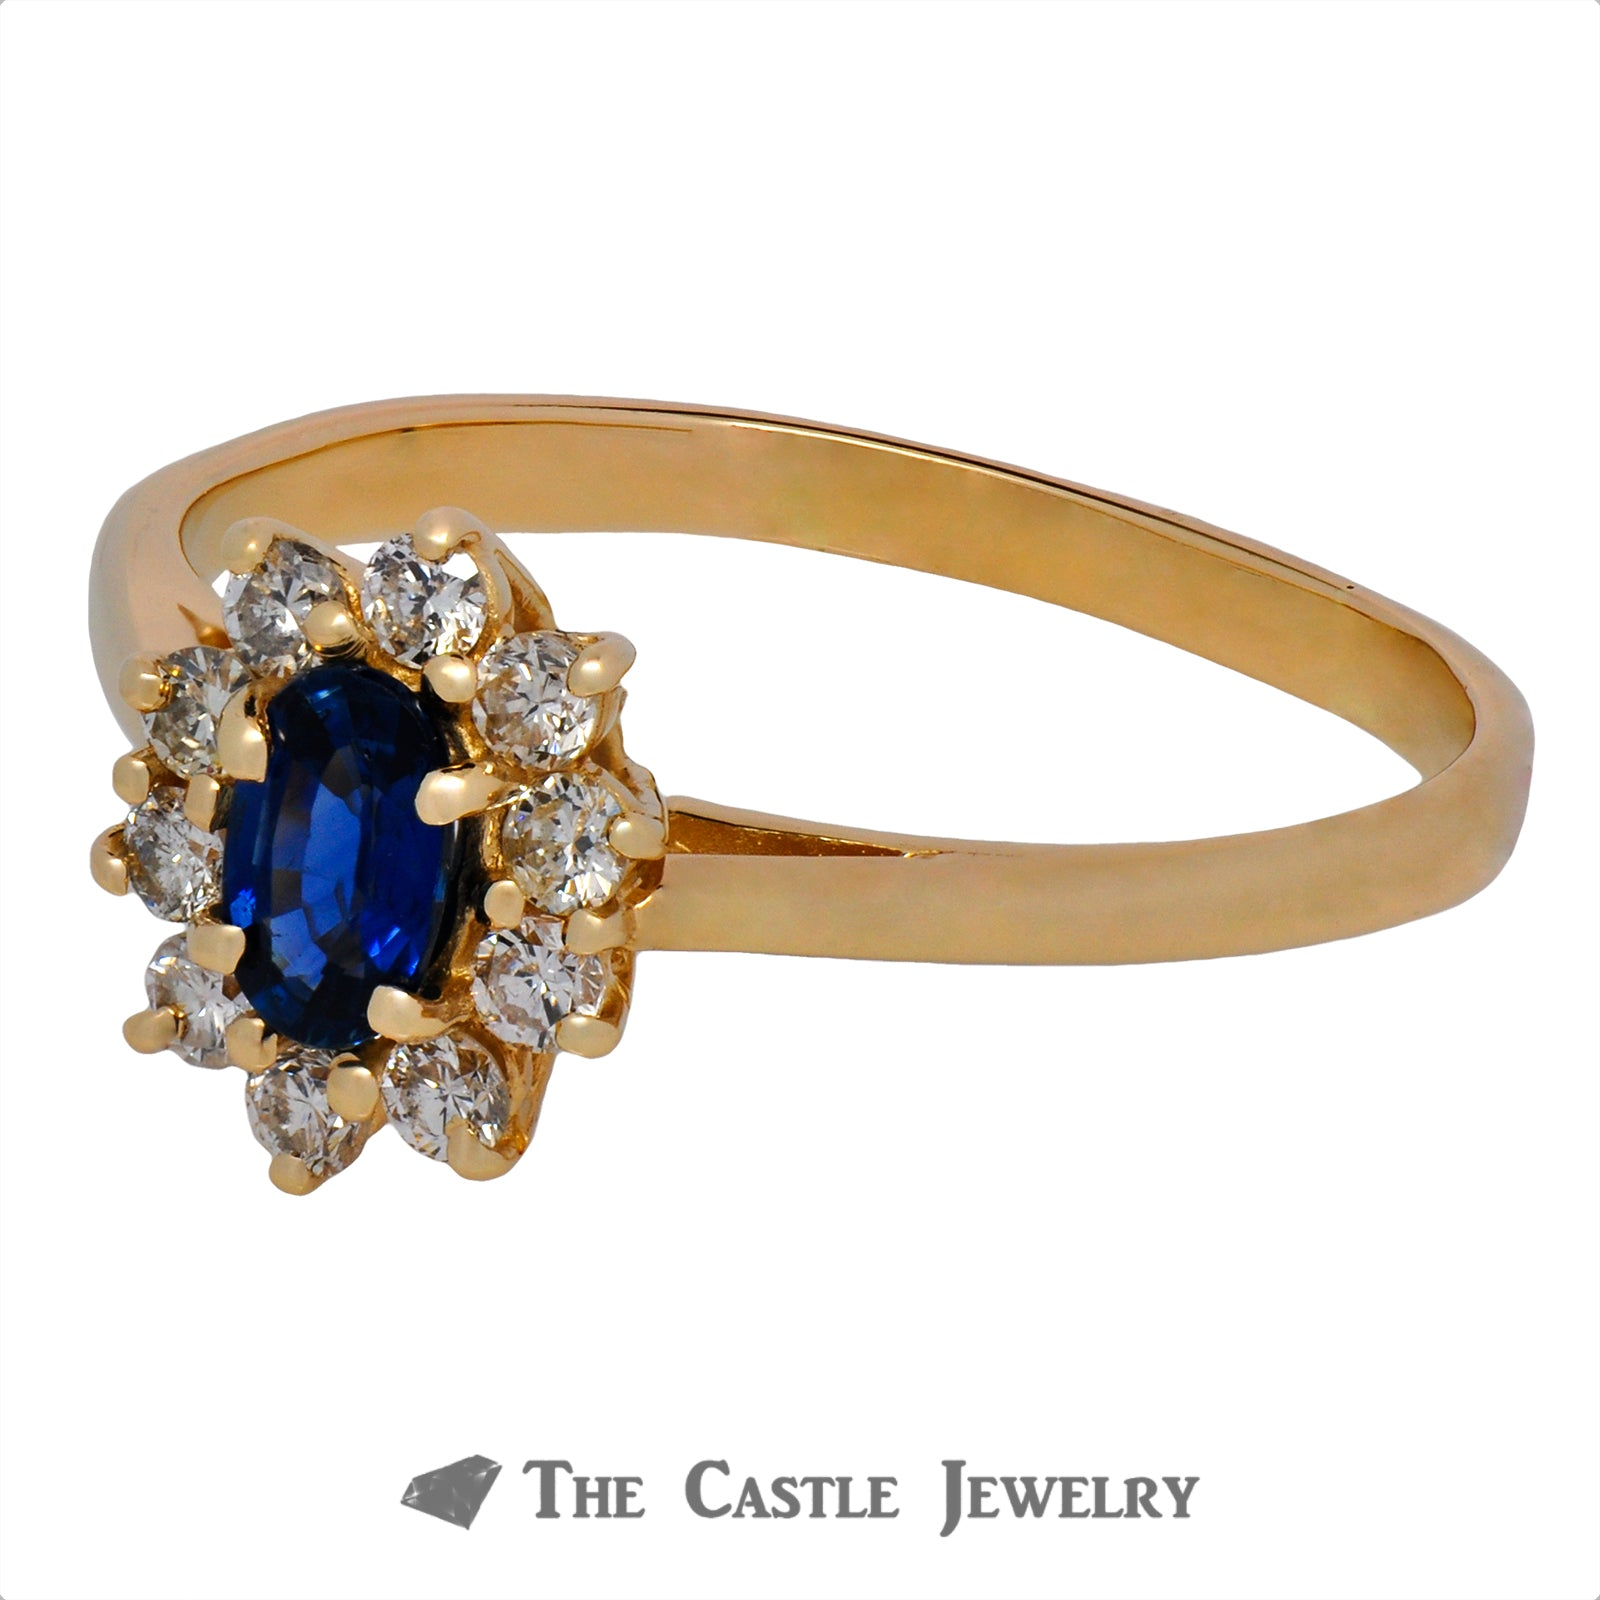 Oval Cut Sapphire Ring with Round Diamond Halo-2